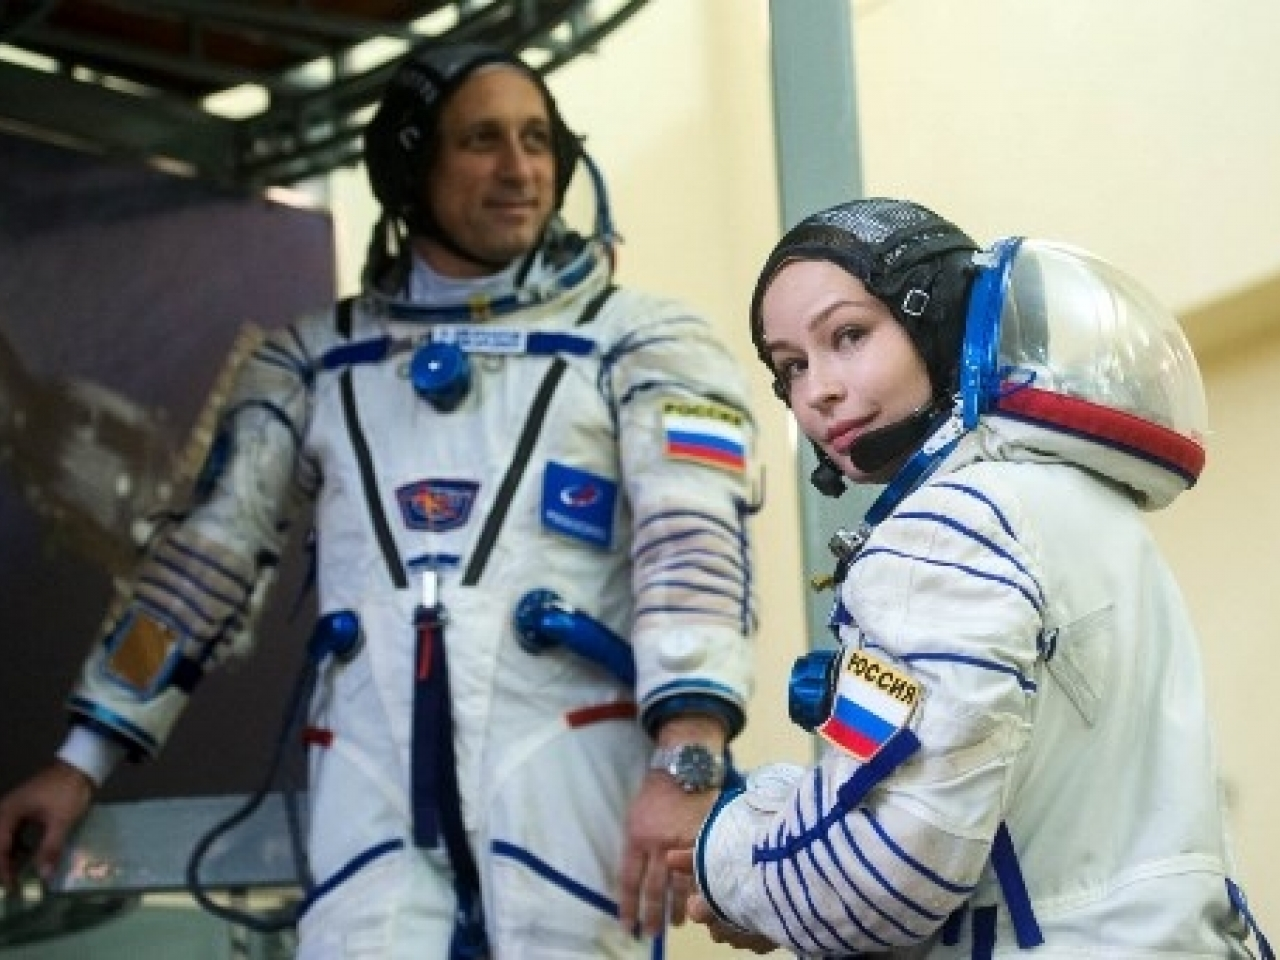 Lead actress Yulia Peresild will head to the ISS to film the first movie in space. Photo: AFP